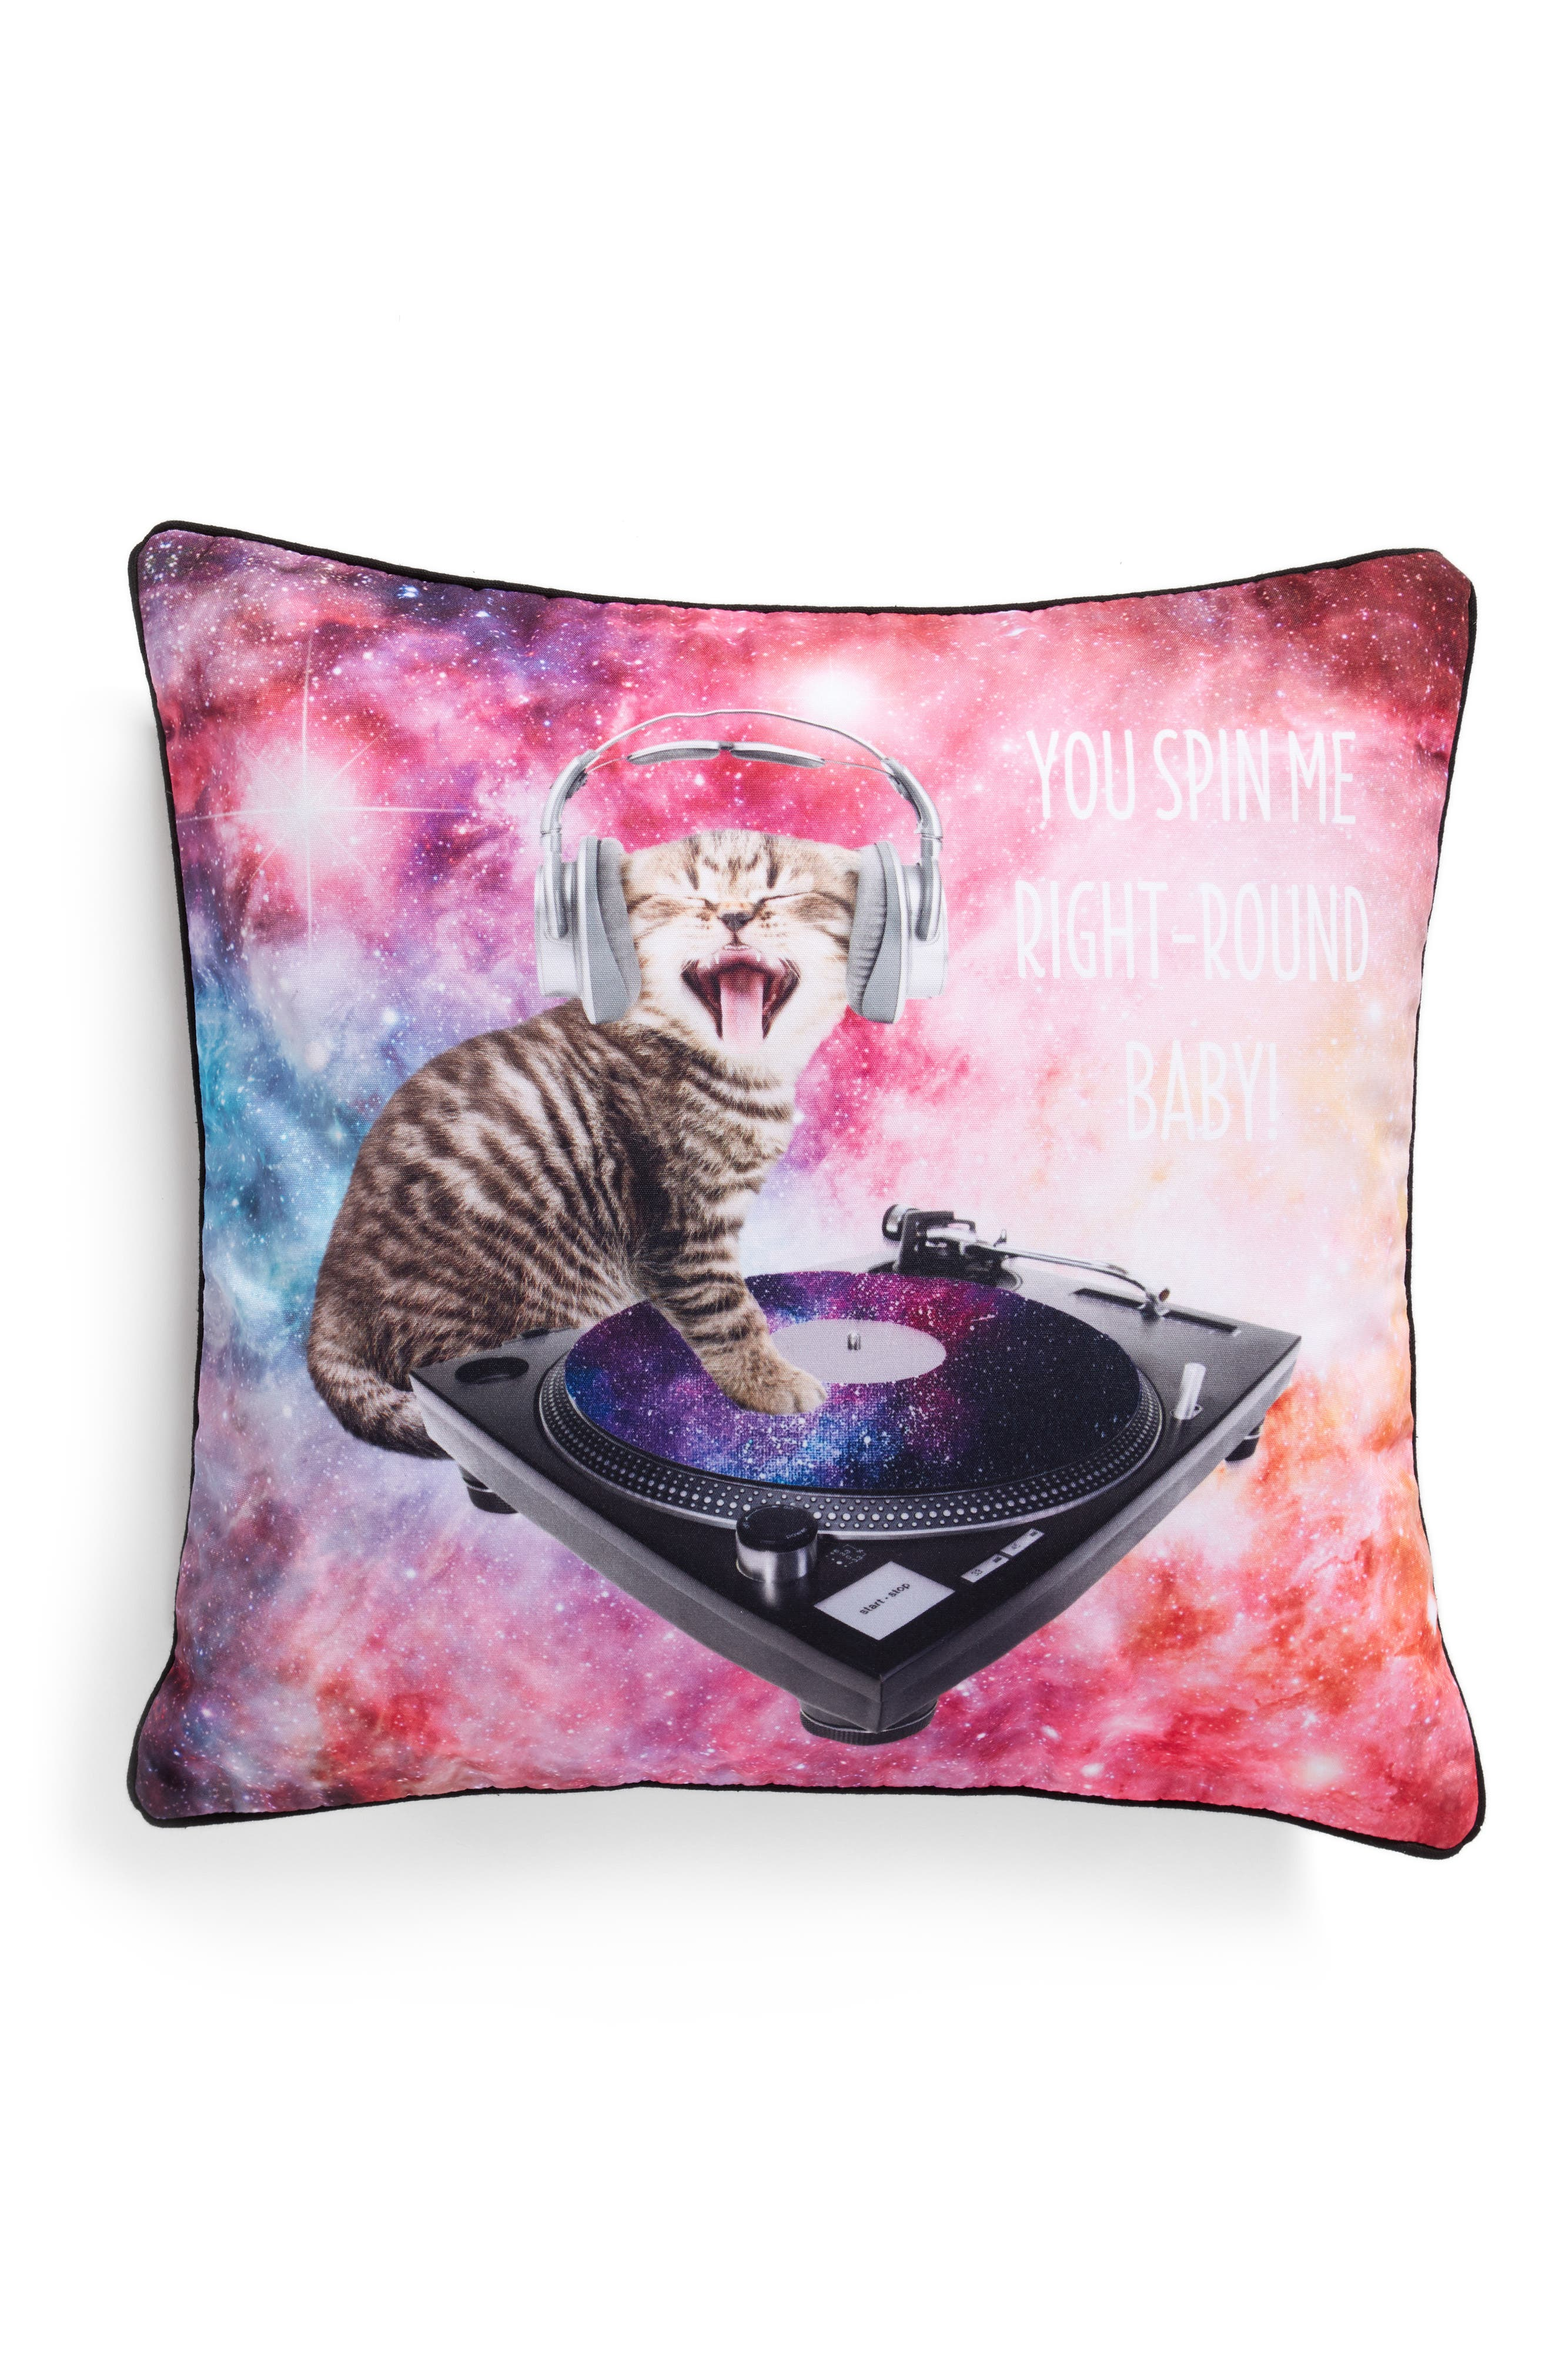 Main Image - Levtex You Spin Me Right Round Accent Pillow